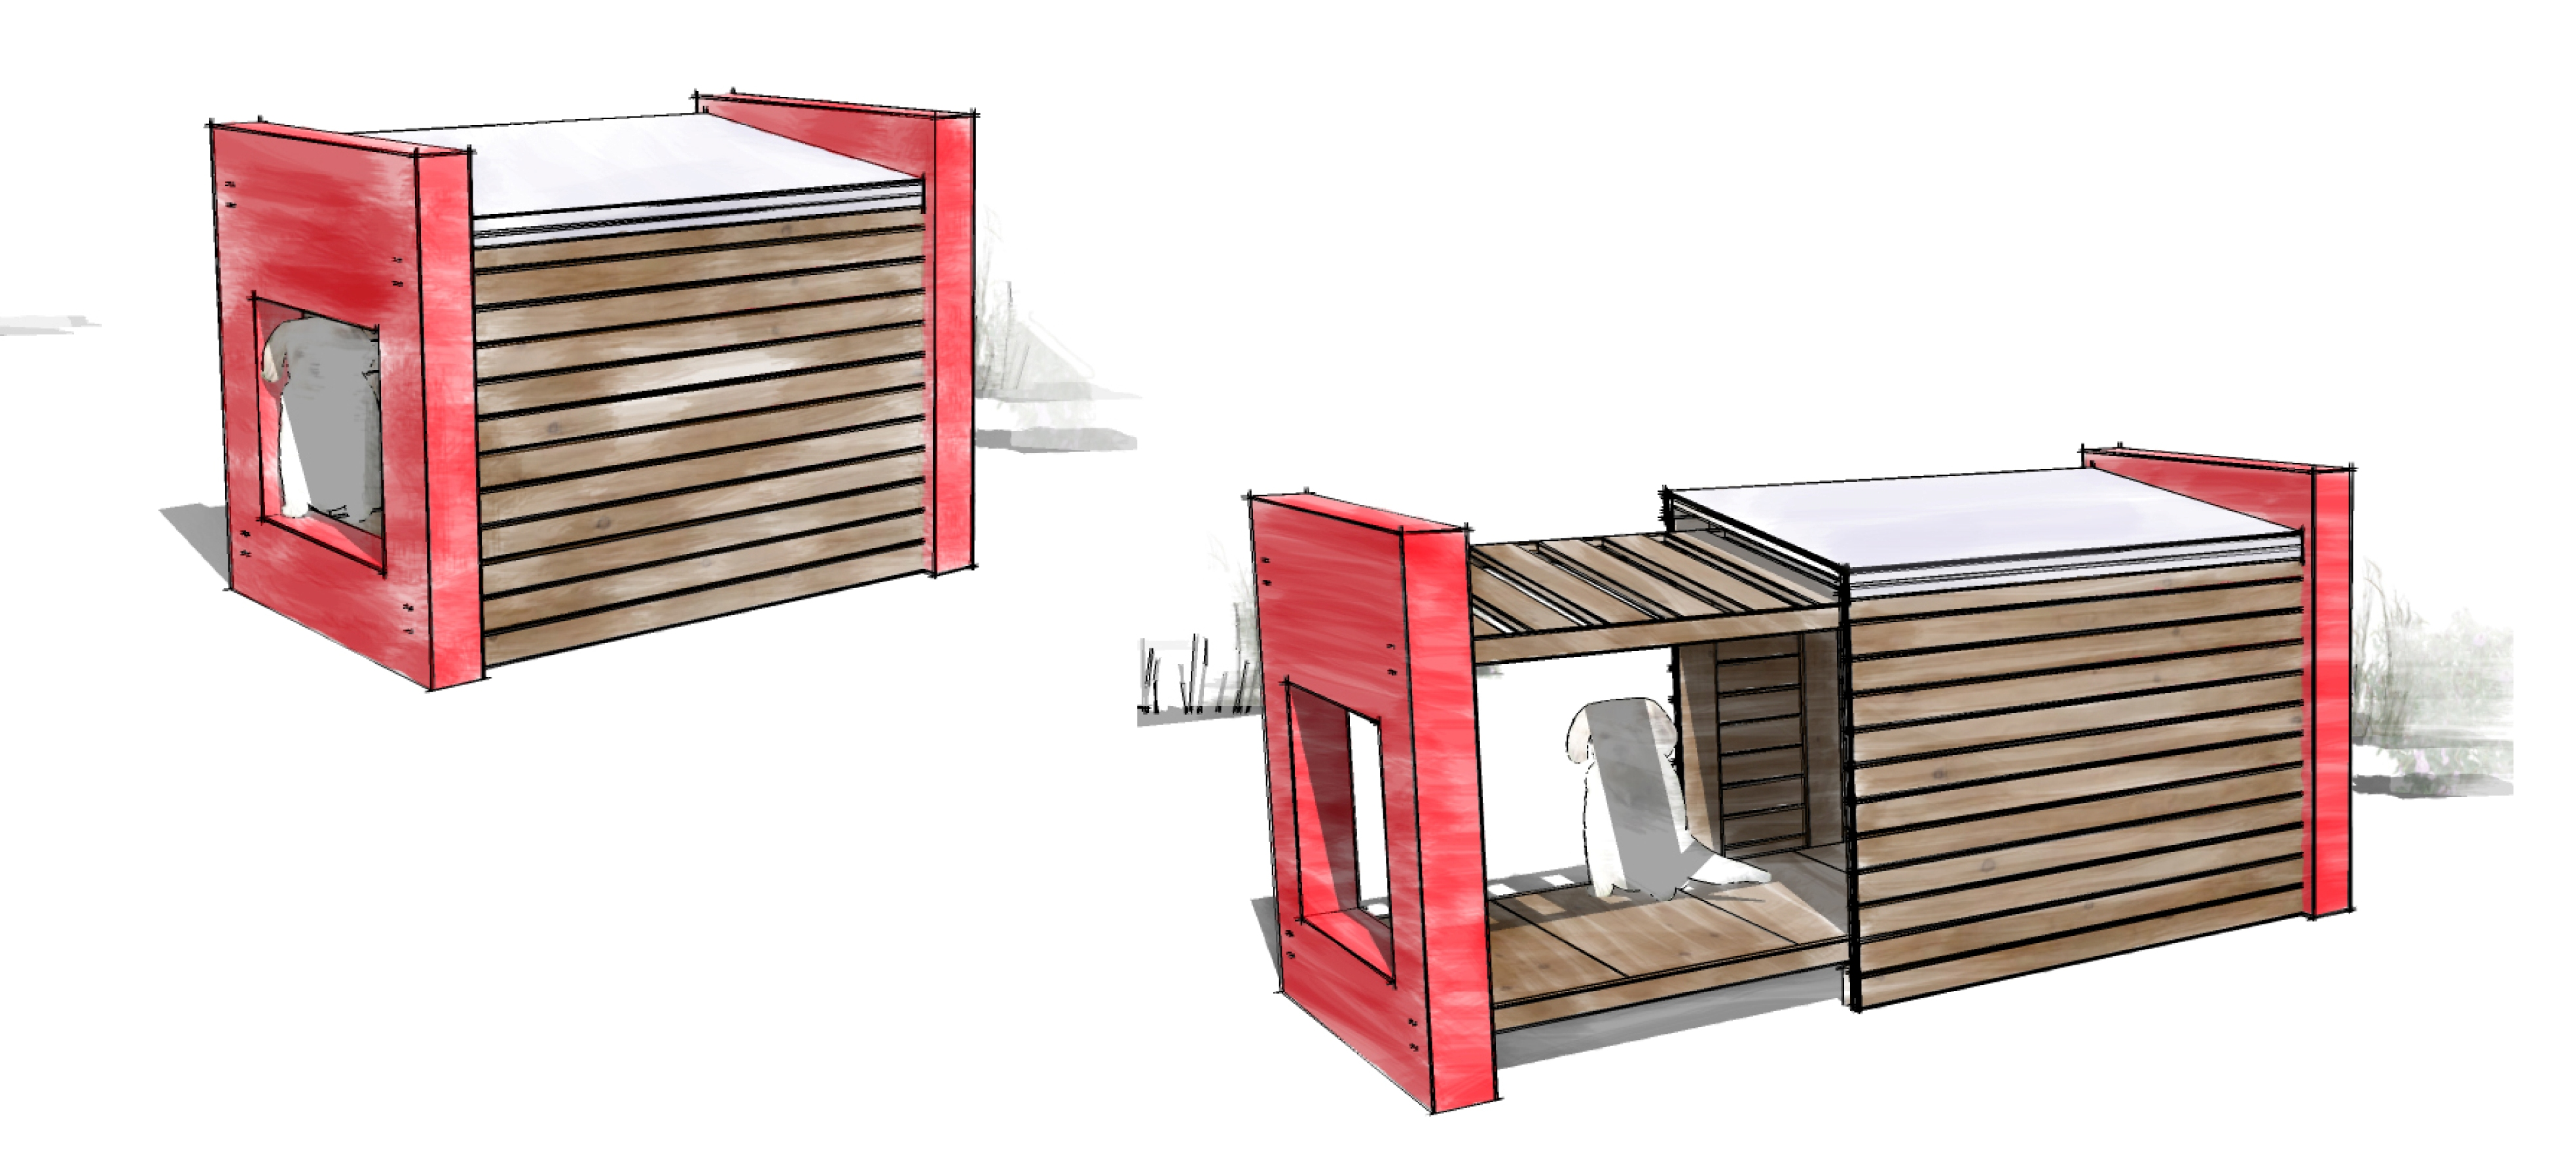 How To Build A Detached Garage moreover Blueprints For Building A Shed in addition Casinha De Cachorro further Man Made Maggie Teardrop Trailer Maggie Dog besides Largechickencoops. on plywood dog house plans